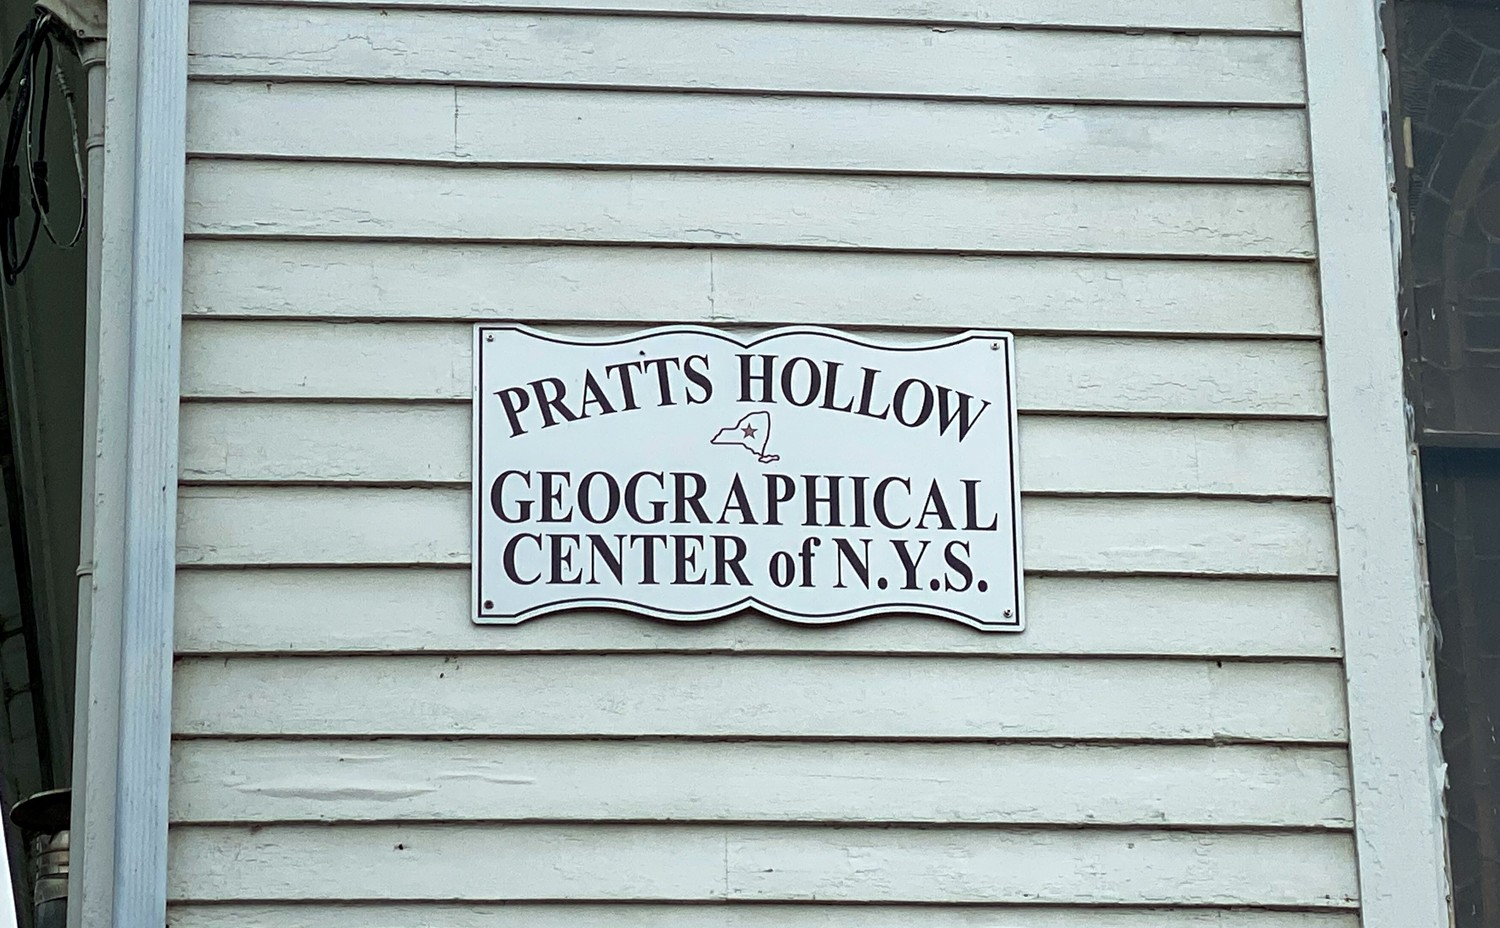 Pratt's Hollow - Geographical Center of New York State - Featured Image